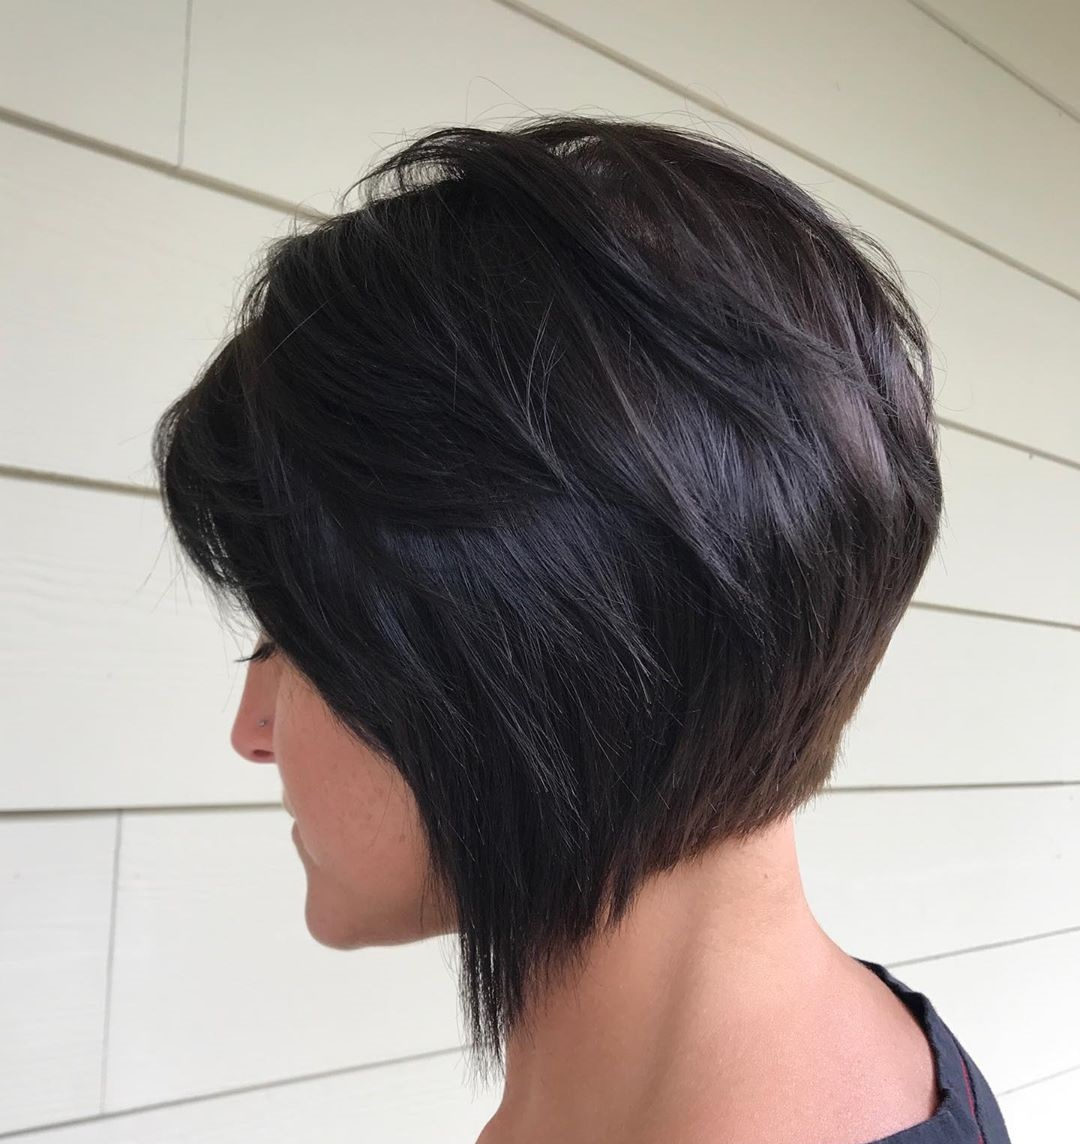 Short Inverted Haircut with Bangs